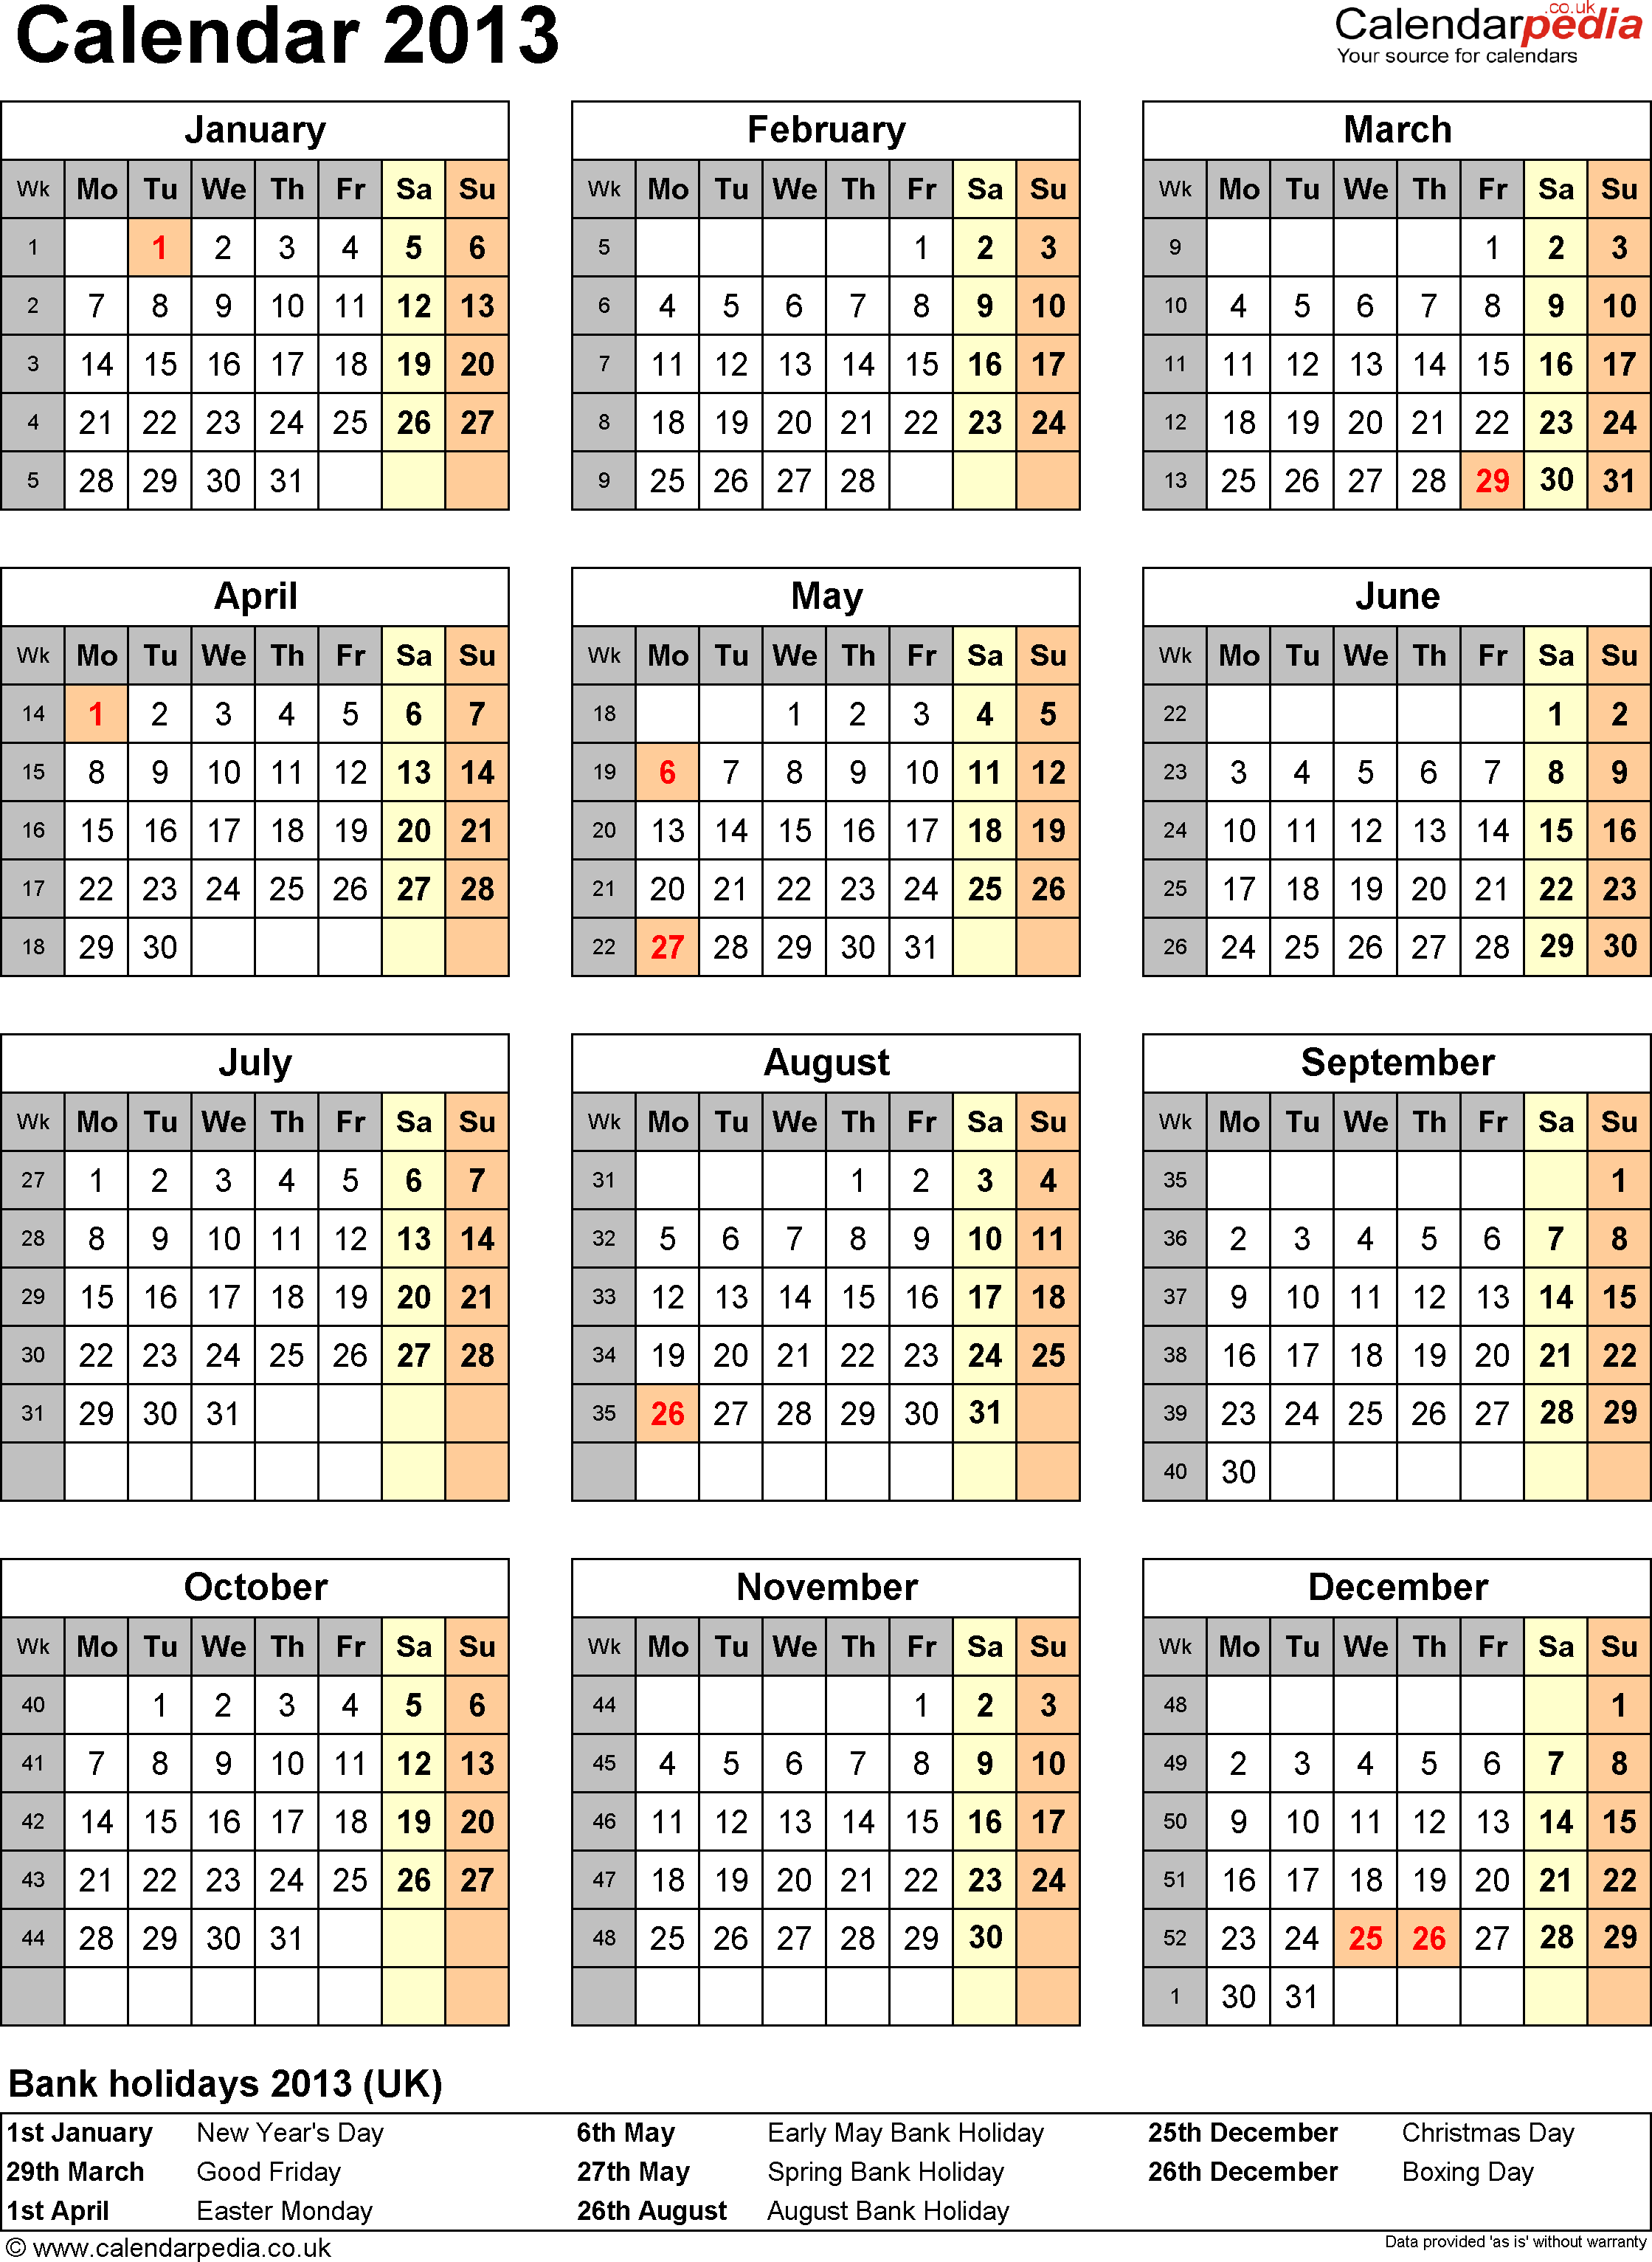 Download Template 11: Yearly calendar 2013 as Excel template, portrait orientation, one A4 page